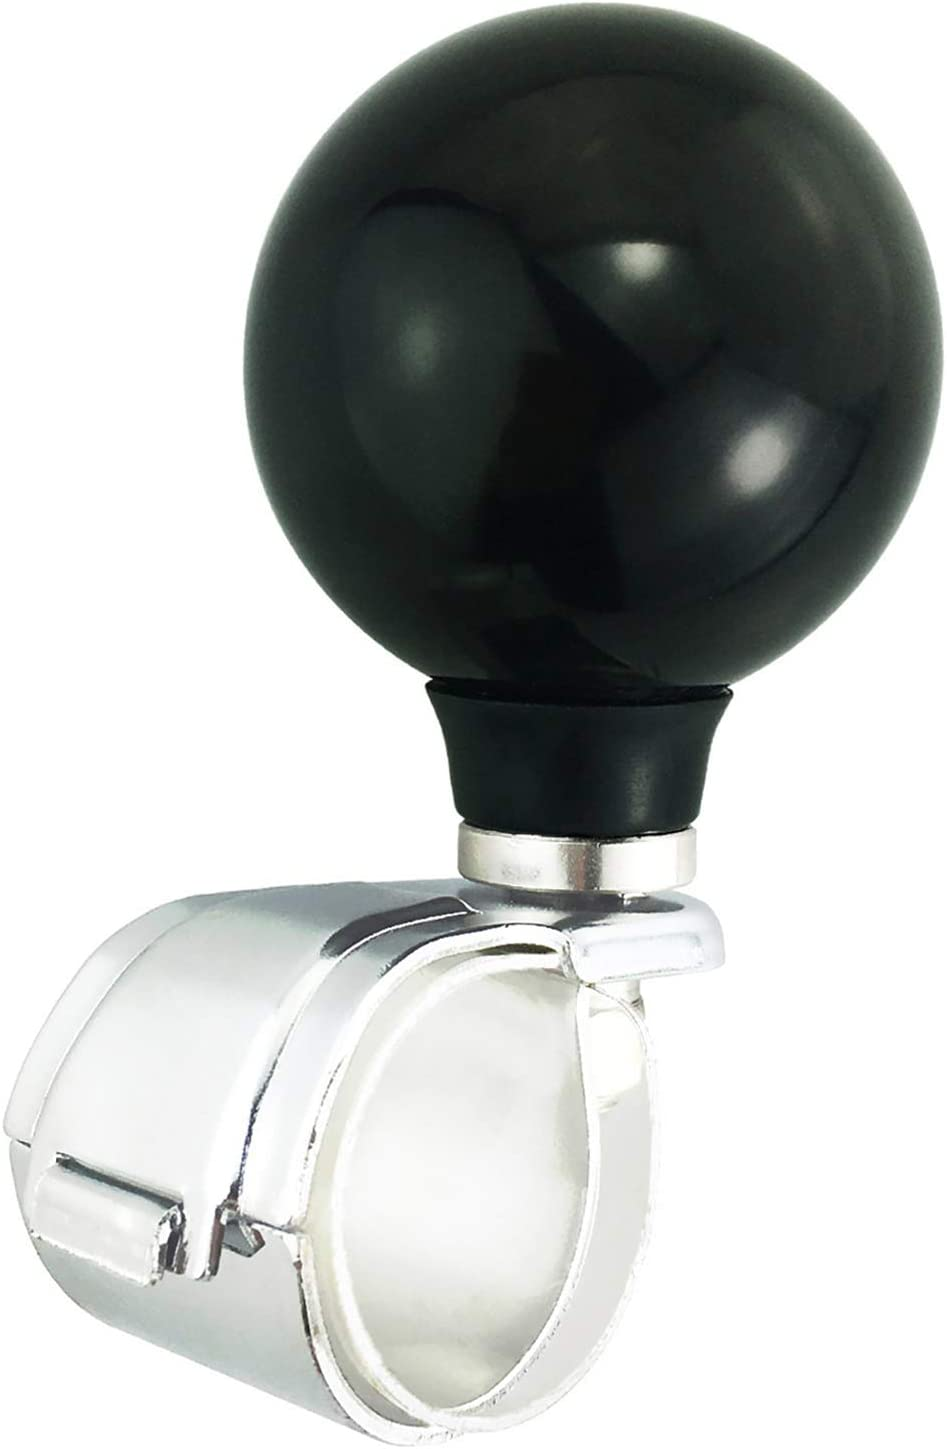 Abfer Black Steering Knob Car Wheel Power Turning Aid Helper Spinner Suicide Brodie Knobs for Most Vehicles Trucks Boats